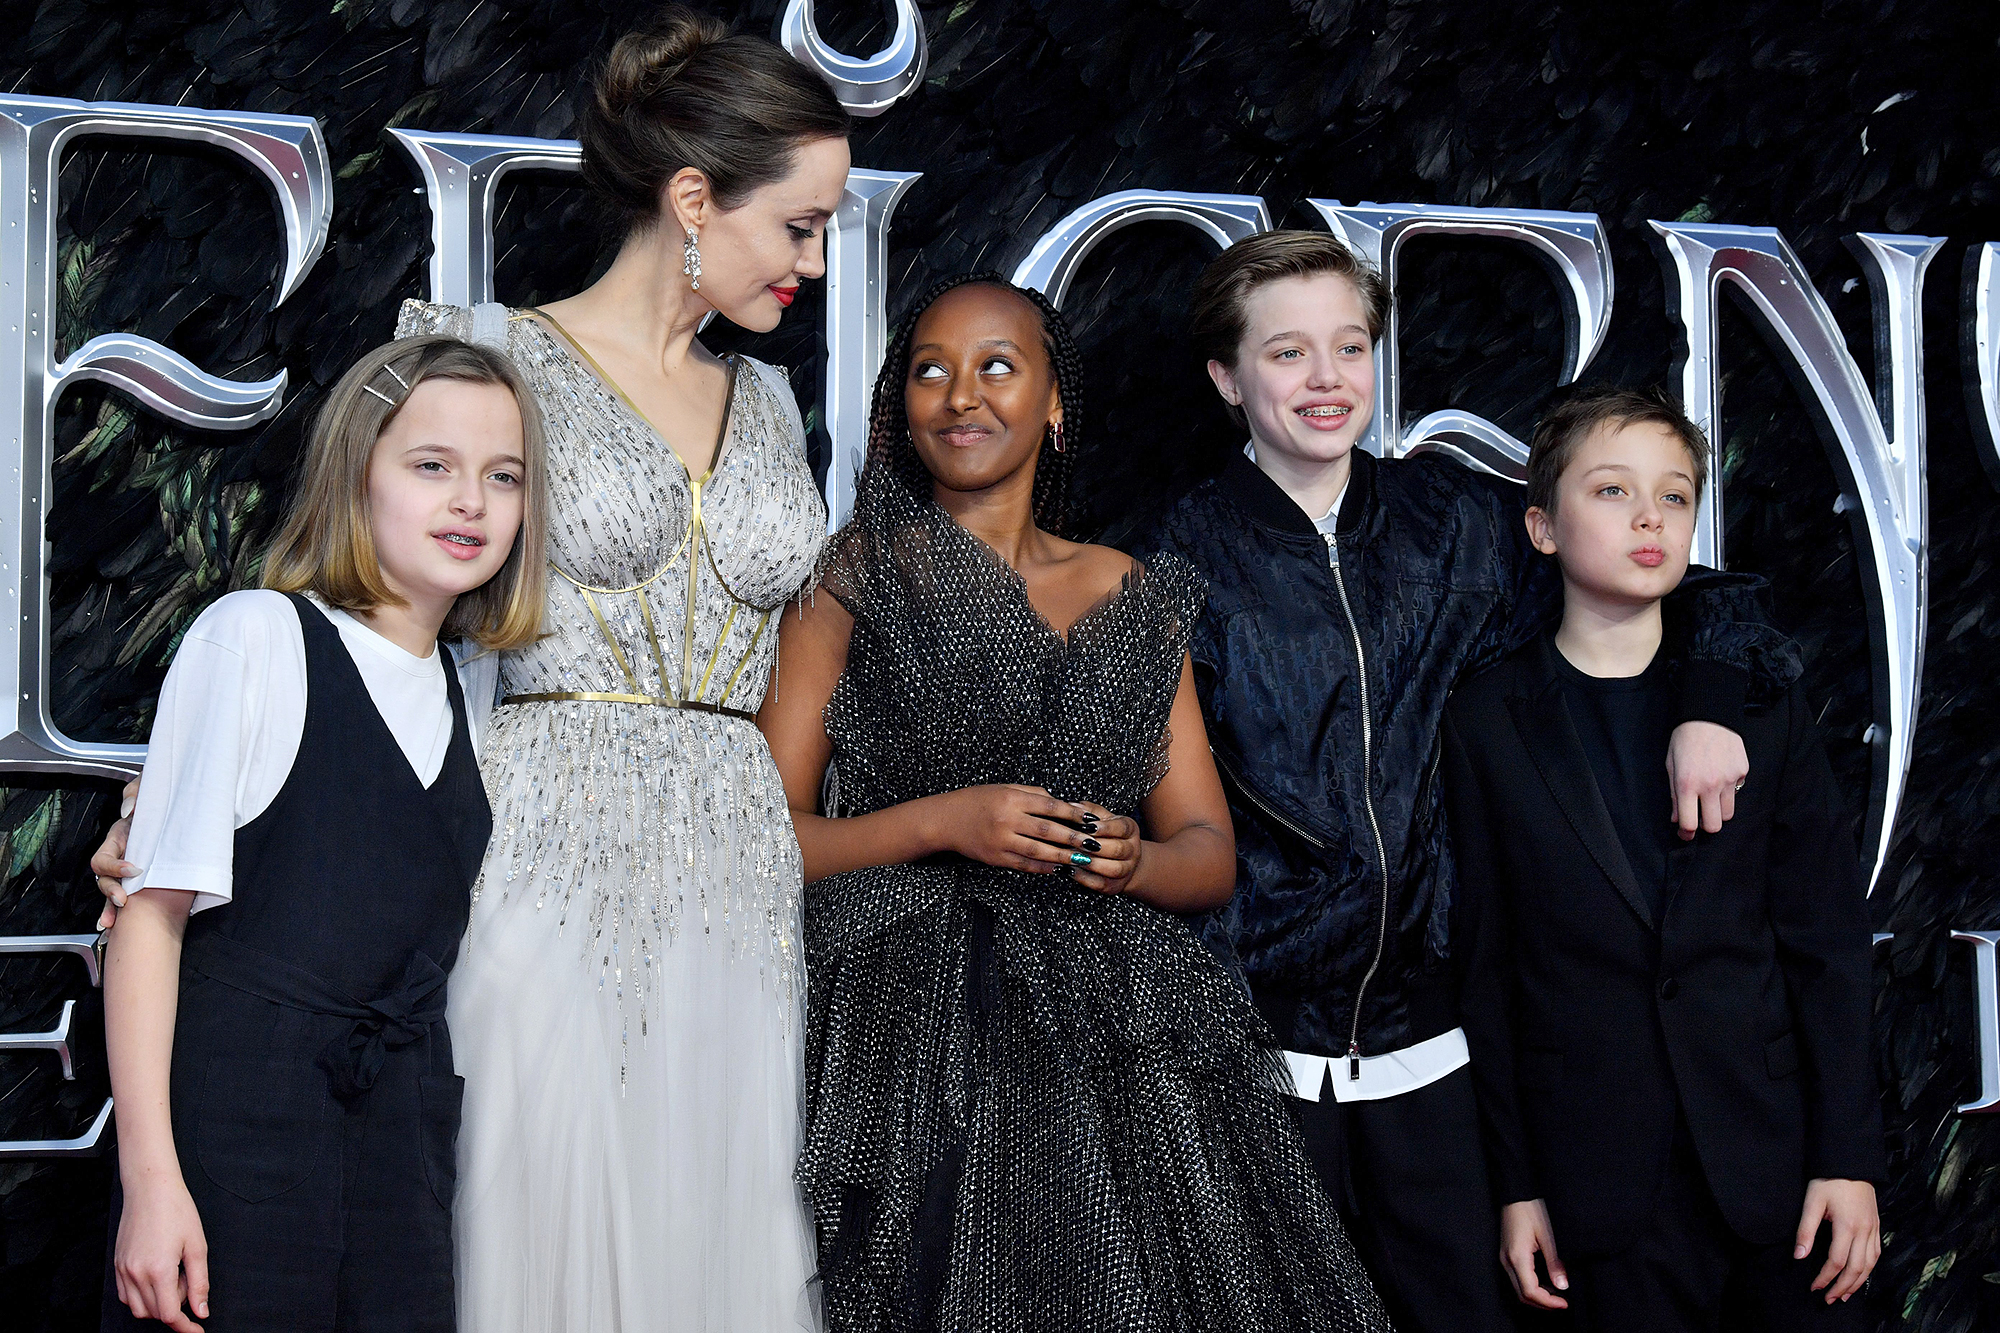 Angelina Jolie Brings Her Kids To London Maleficent Premiere